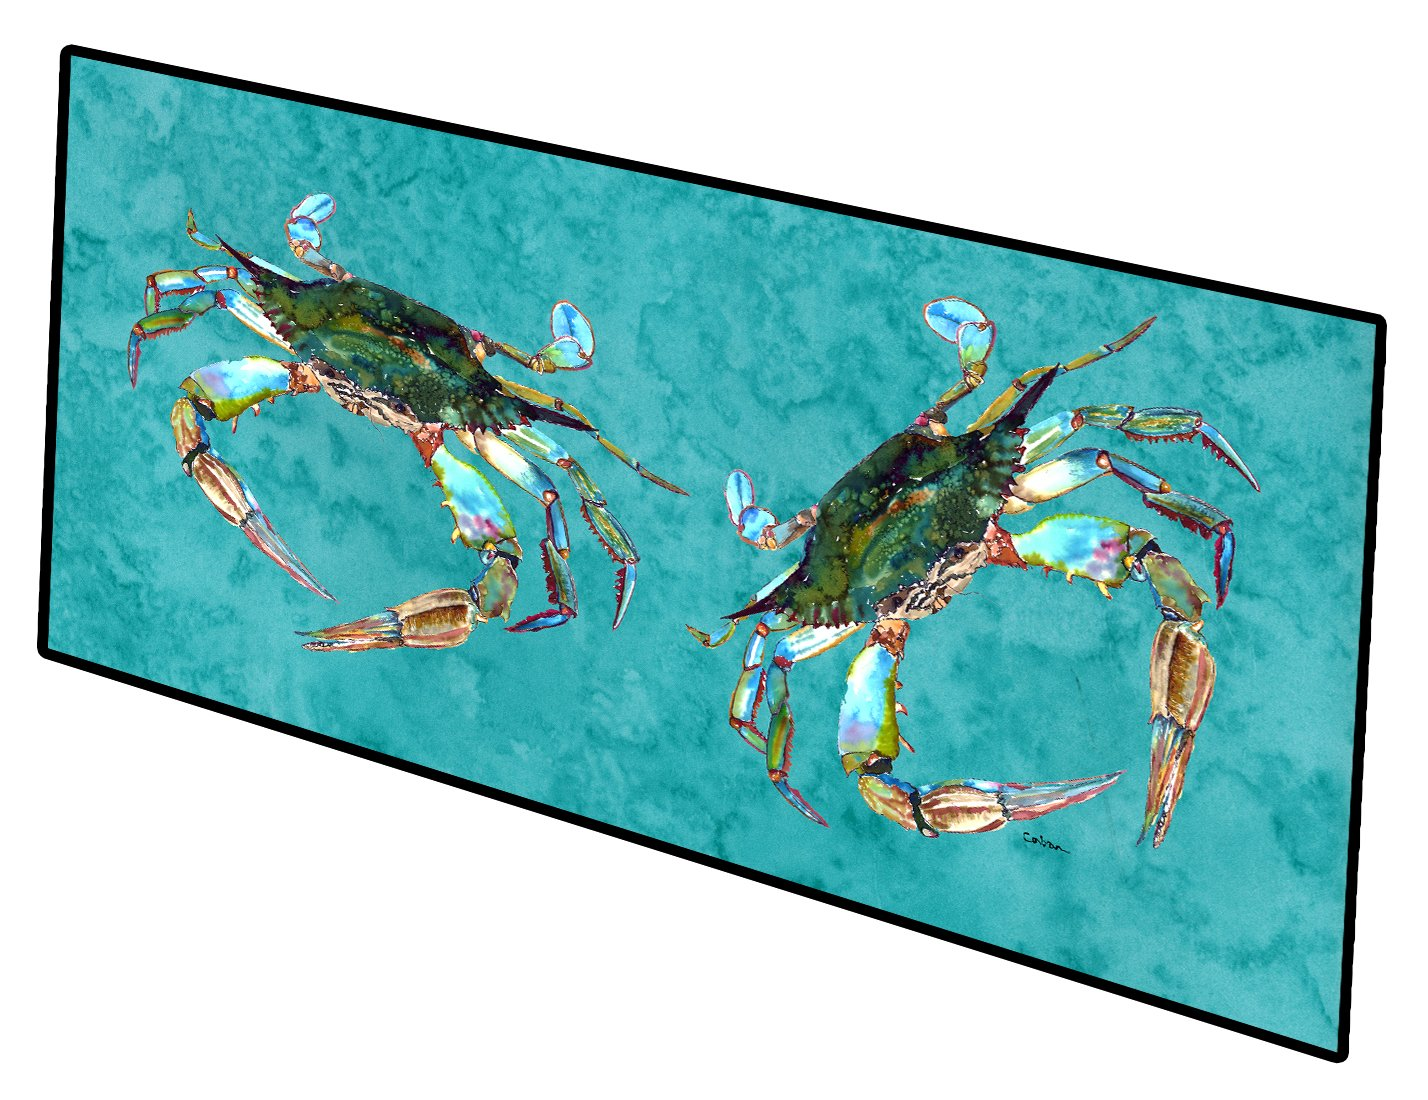 Blue Crab on Teal Indoor or Outdoor Runner Mat 28x58 by Caroline's Treasures